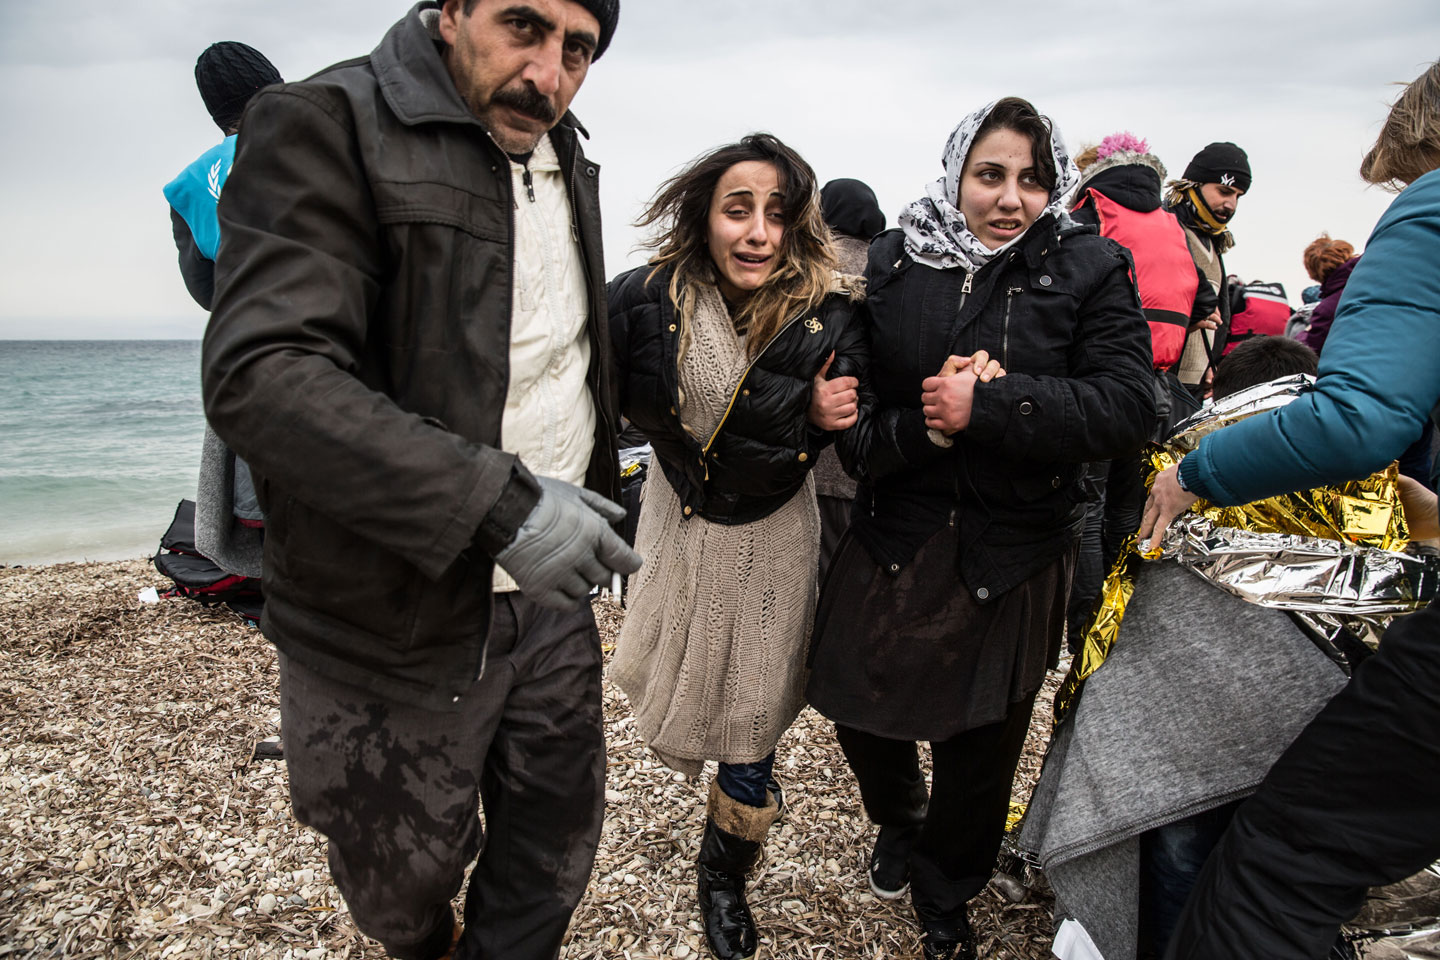 photographer: Hereward Holland |A family of refugees help a distressed woman ashore on the Greek island of Lesvos.